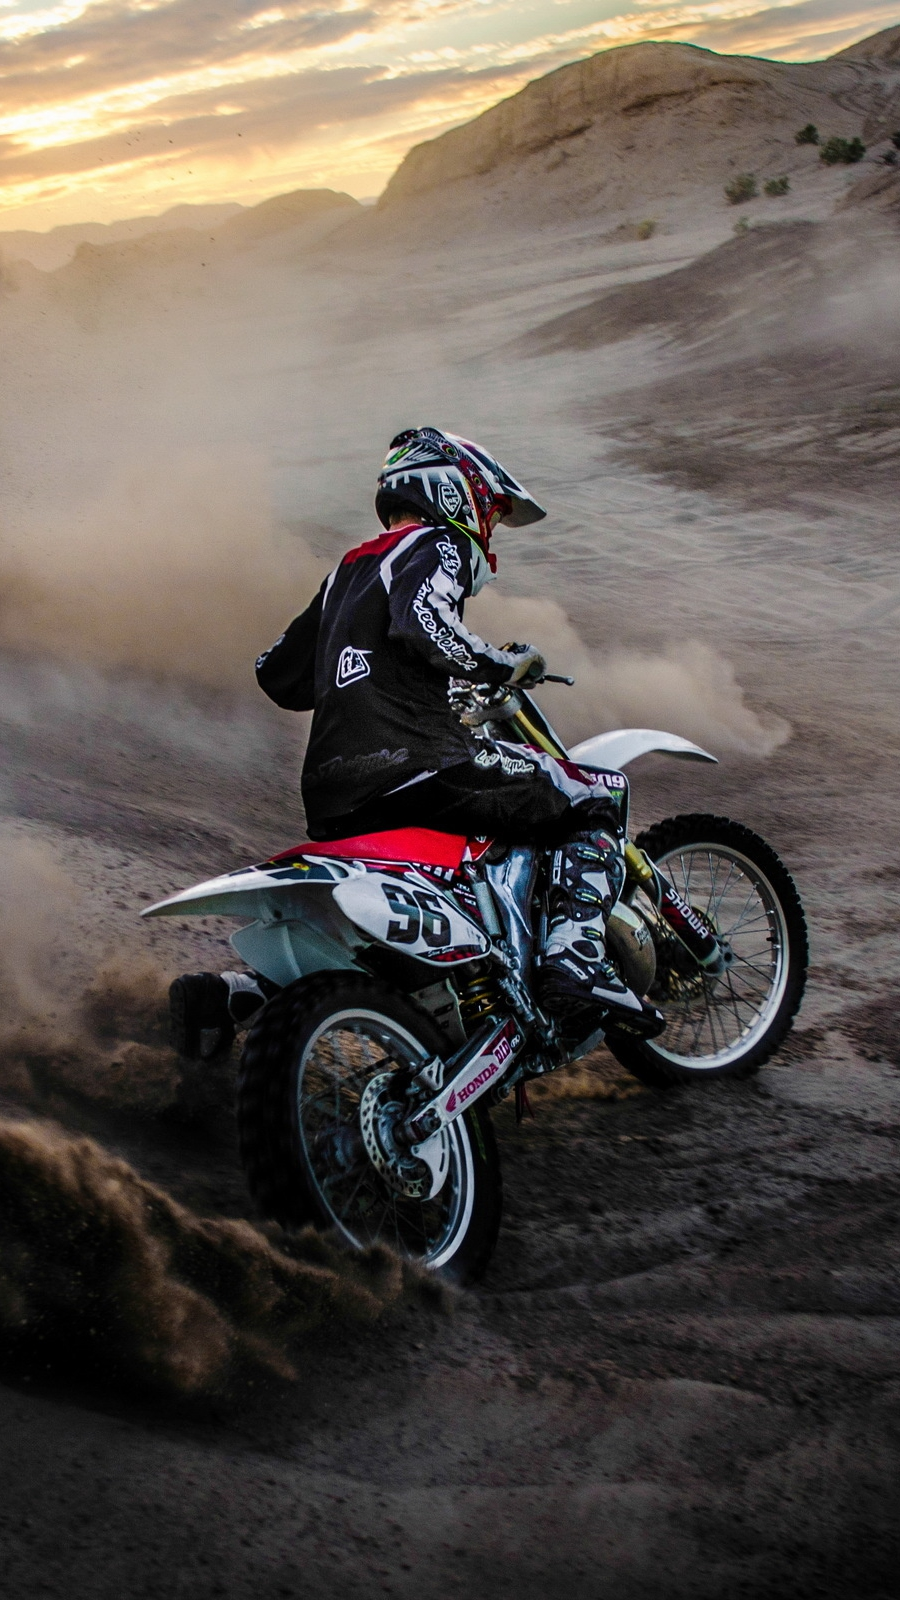 Girl On Bike Hd Wallpaper Motocross Mudding Iphone Wallpaper Iphone Wallpapers